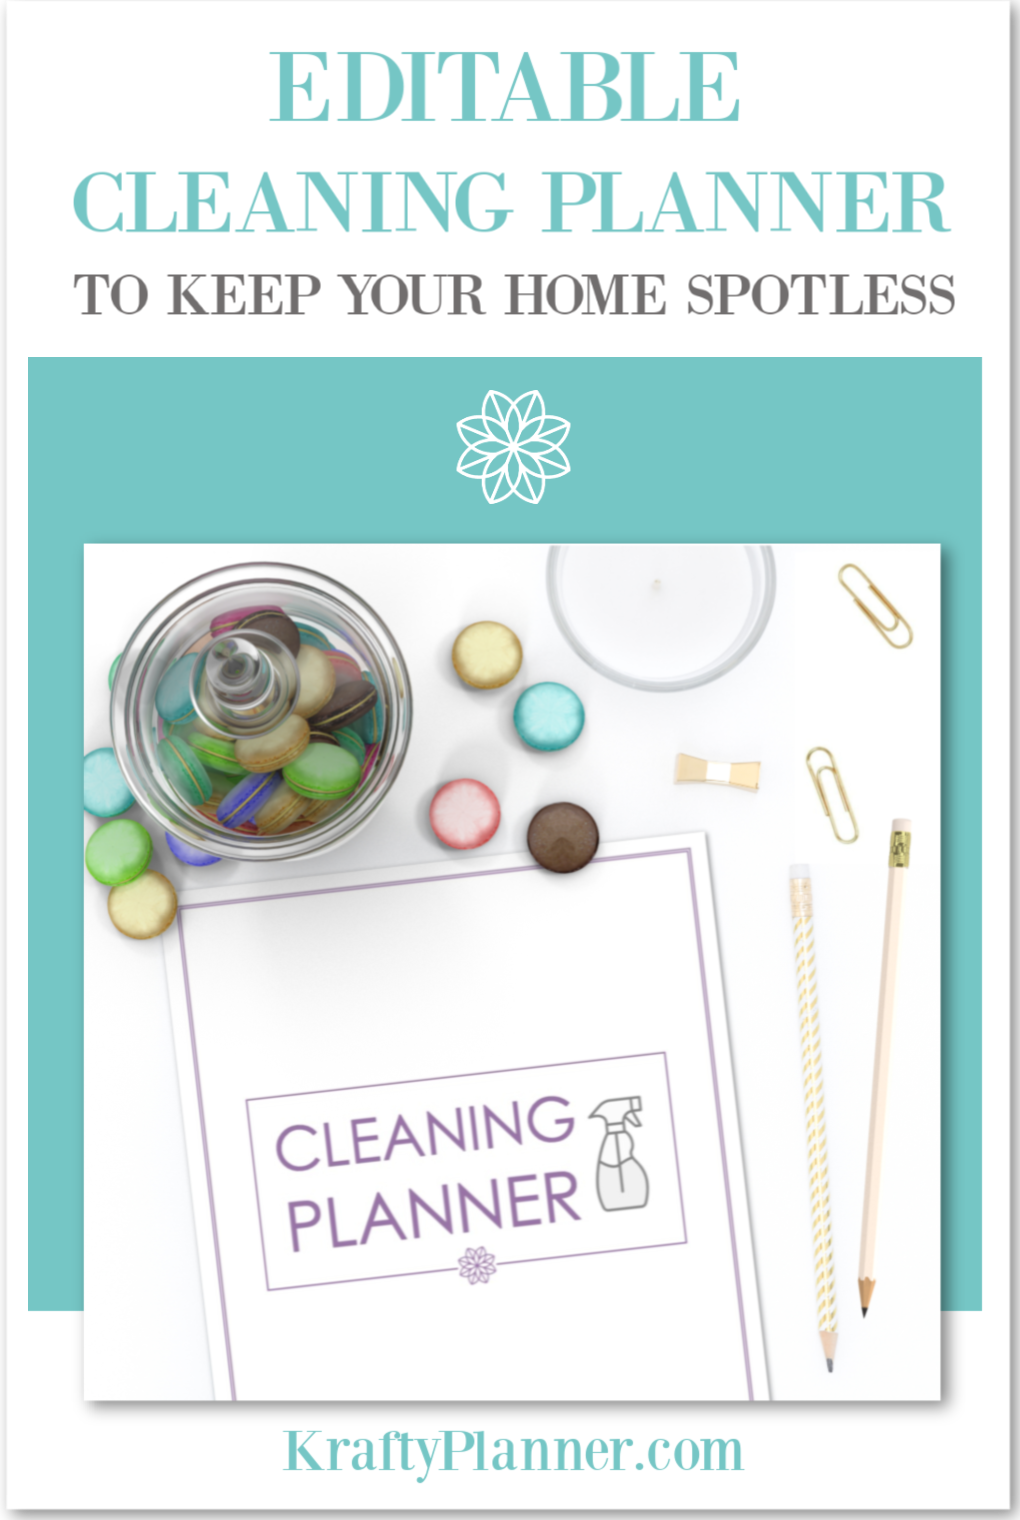 Editable Cleaning Planner to Help Keep Your Home Spotless PIN 3.png